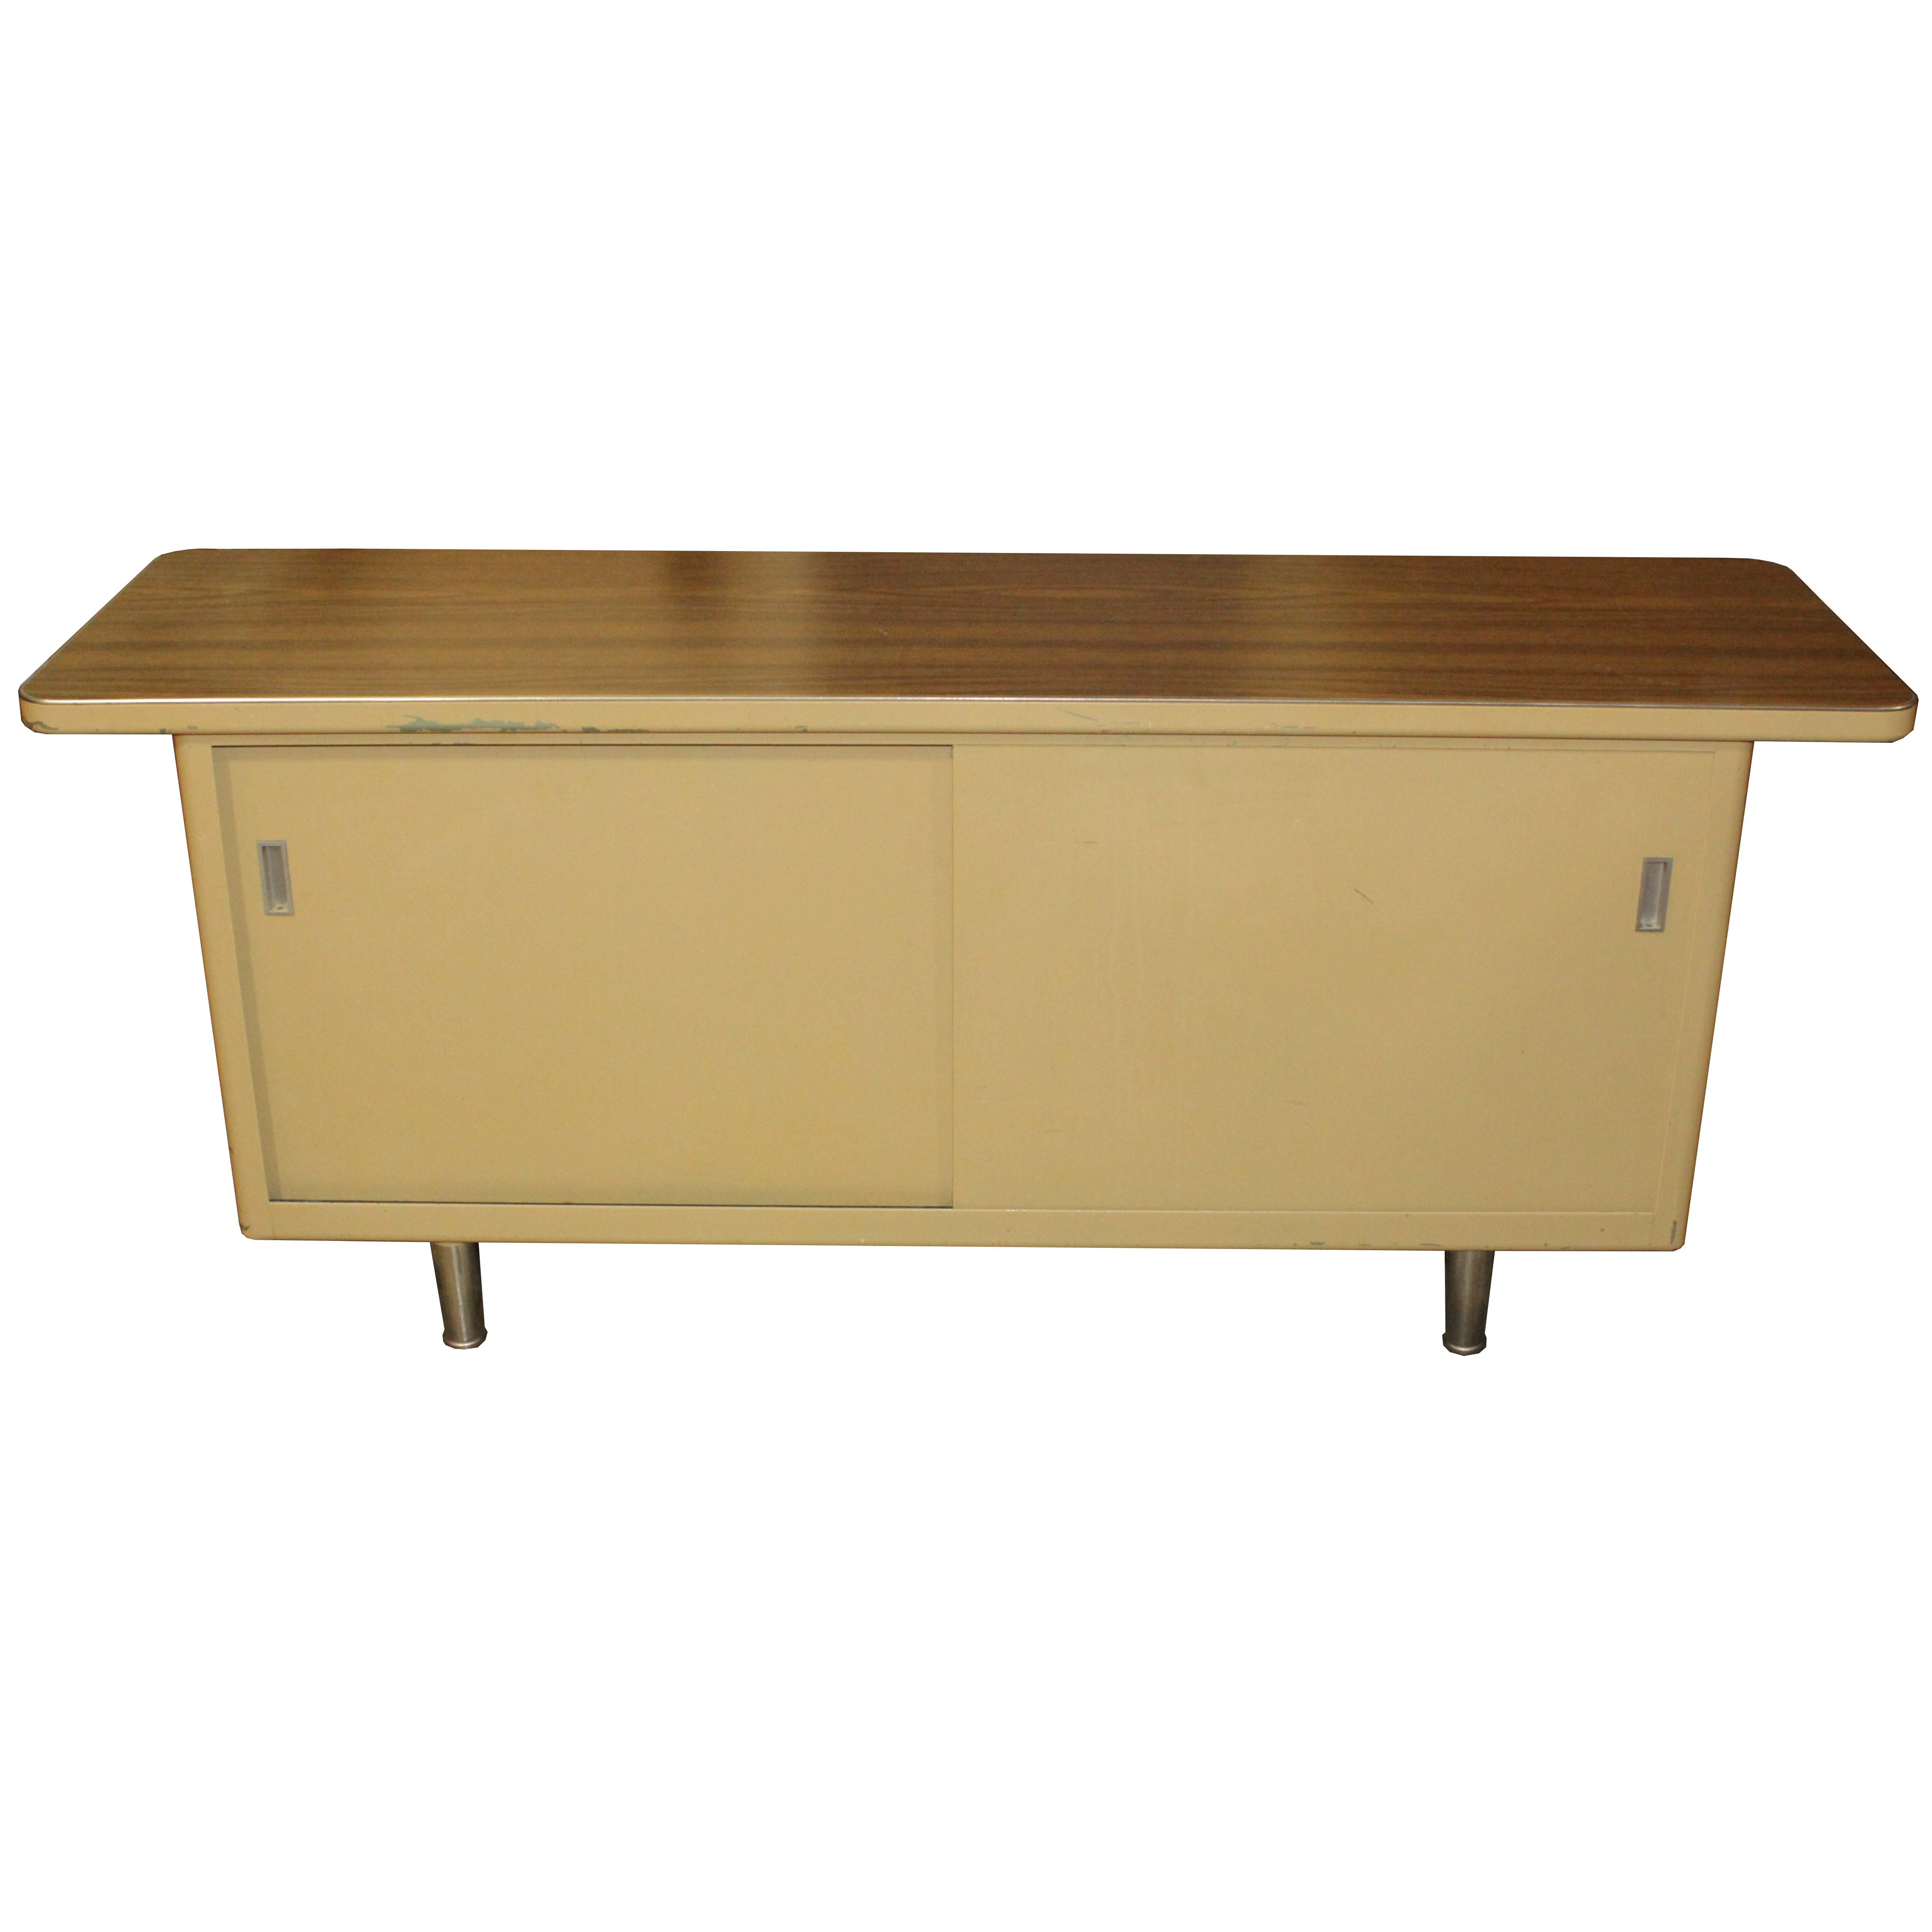 Metal Office Credenza by Steelcase, Mid-20th Century